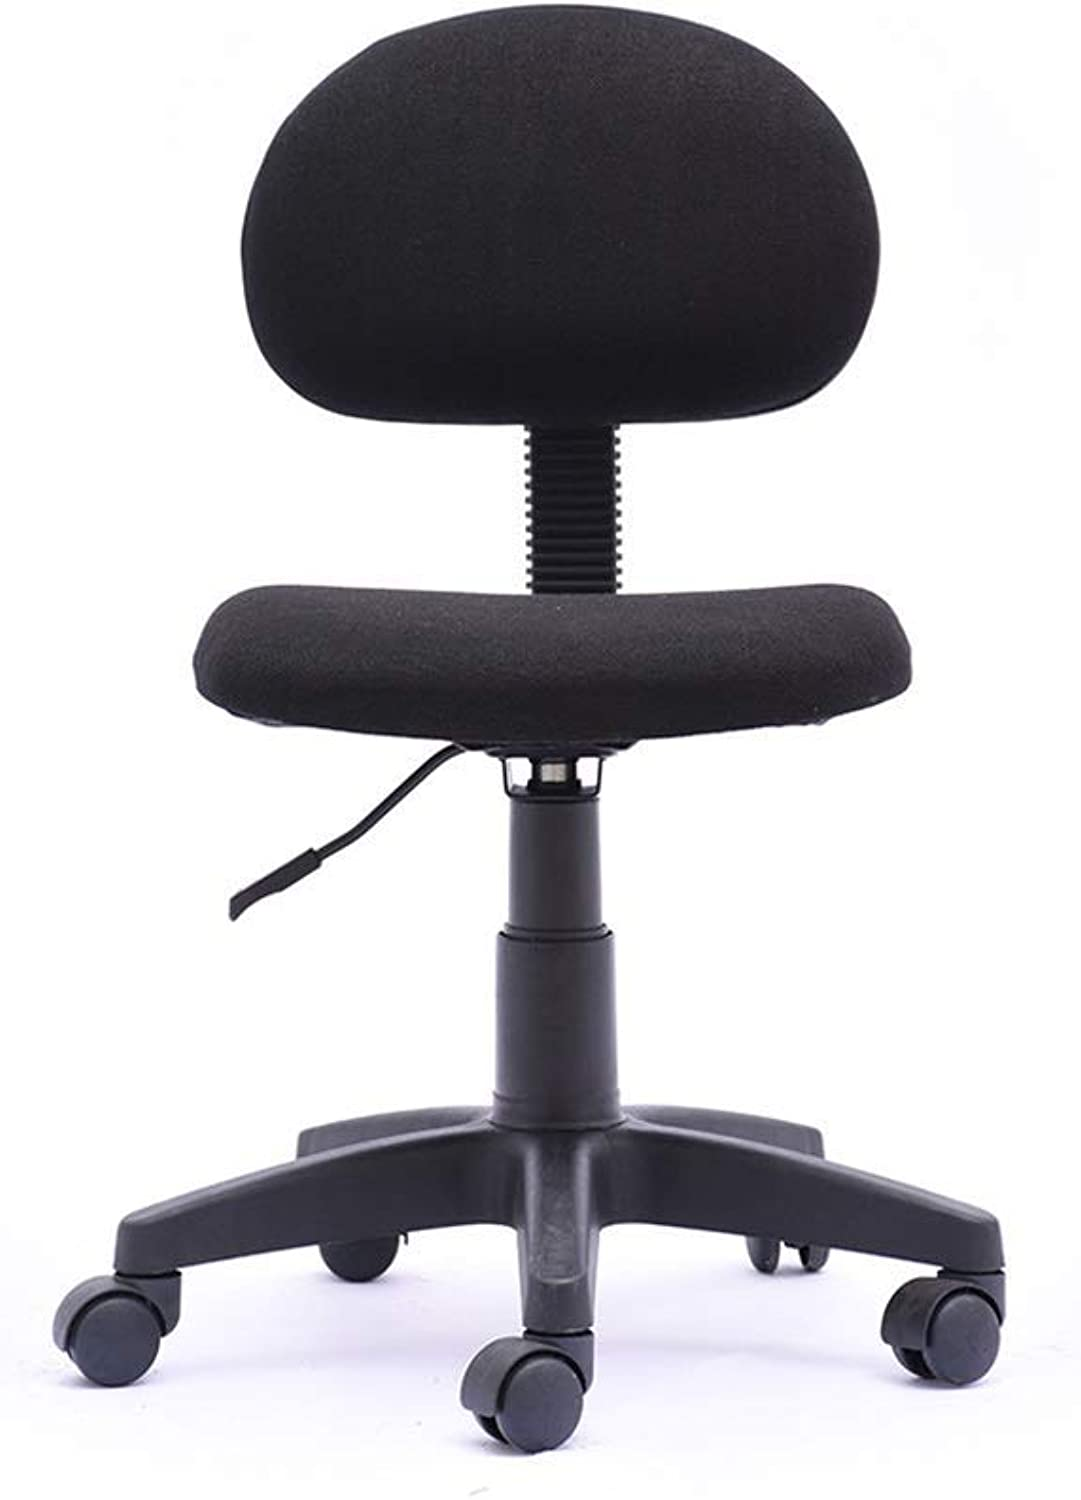 Bar Stools, High Stool, Backrest Seat Desk Computer Home Office Counter Chair, One Piece Two Pieces for Bar Kitchen Restaurant Living Room Cafe (color   Black)